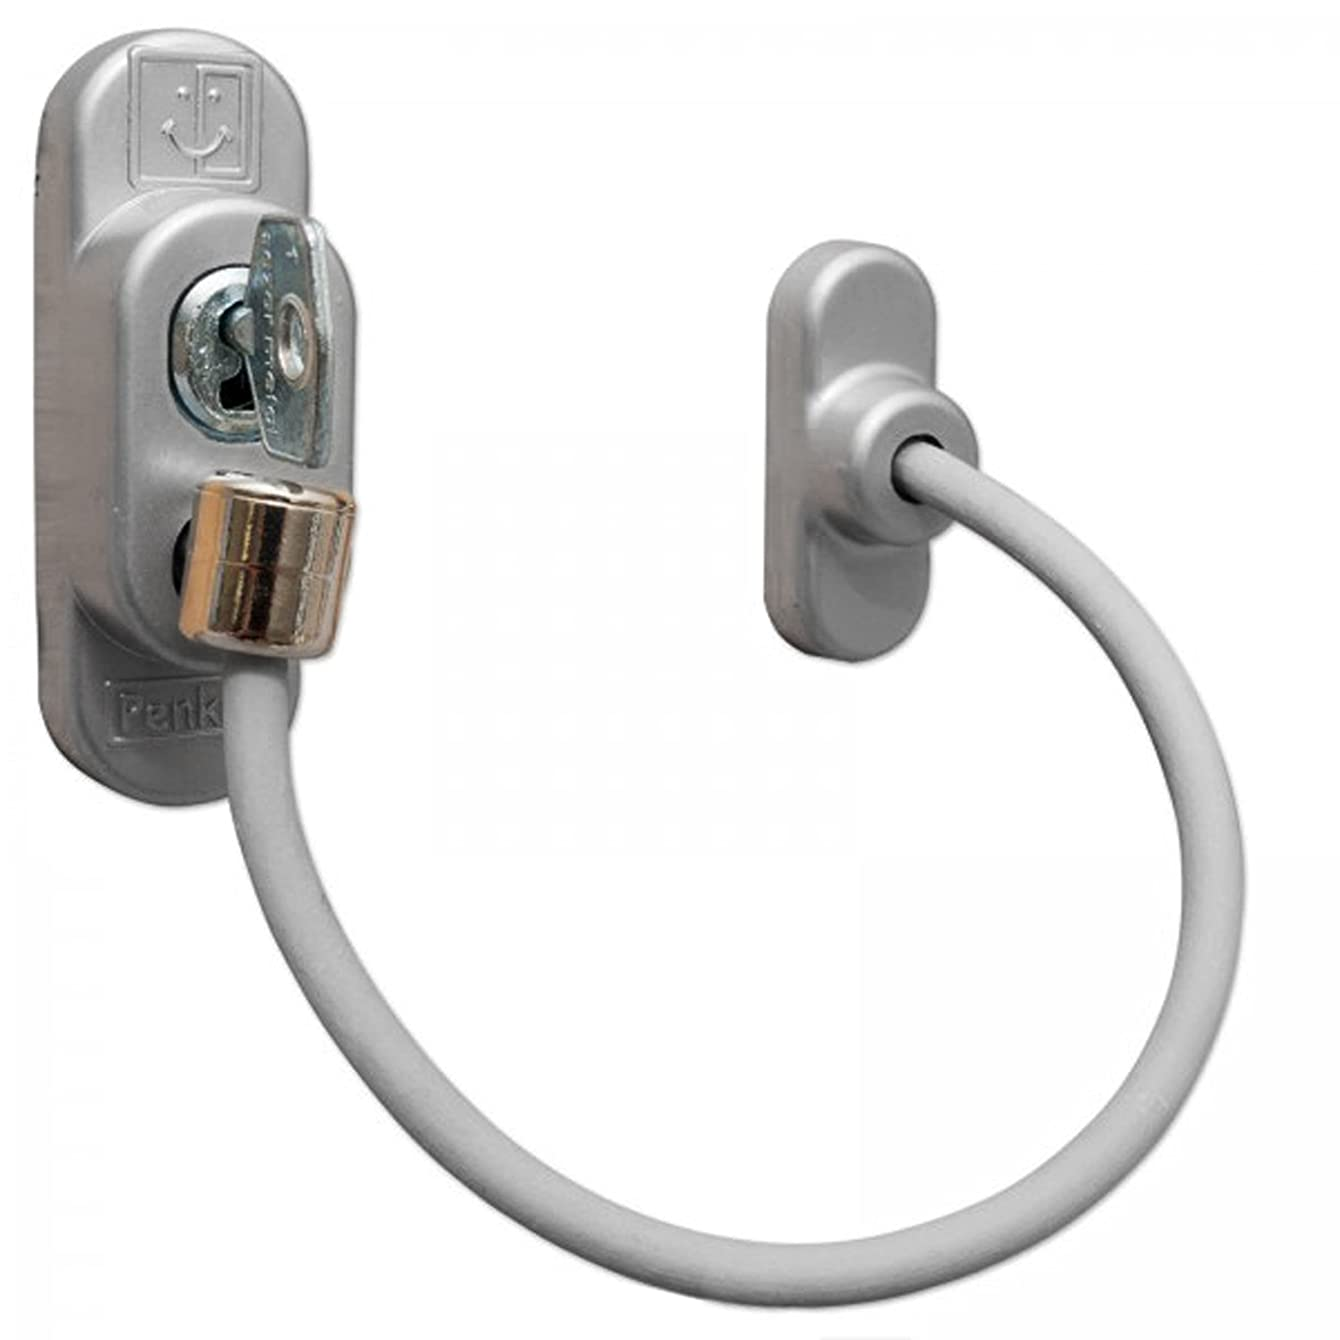 ComfoRED- Child Safety Home Security Window Door Restrictors Lockable Cable (Grey)